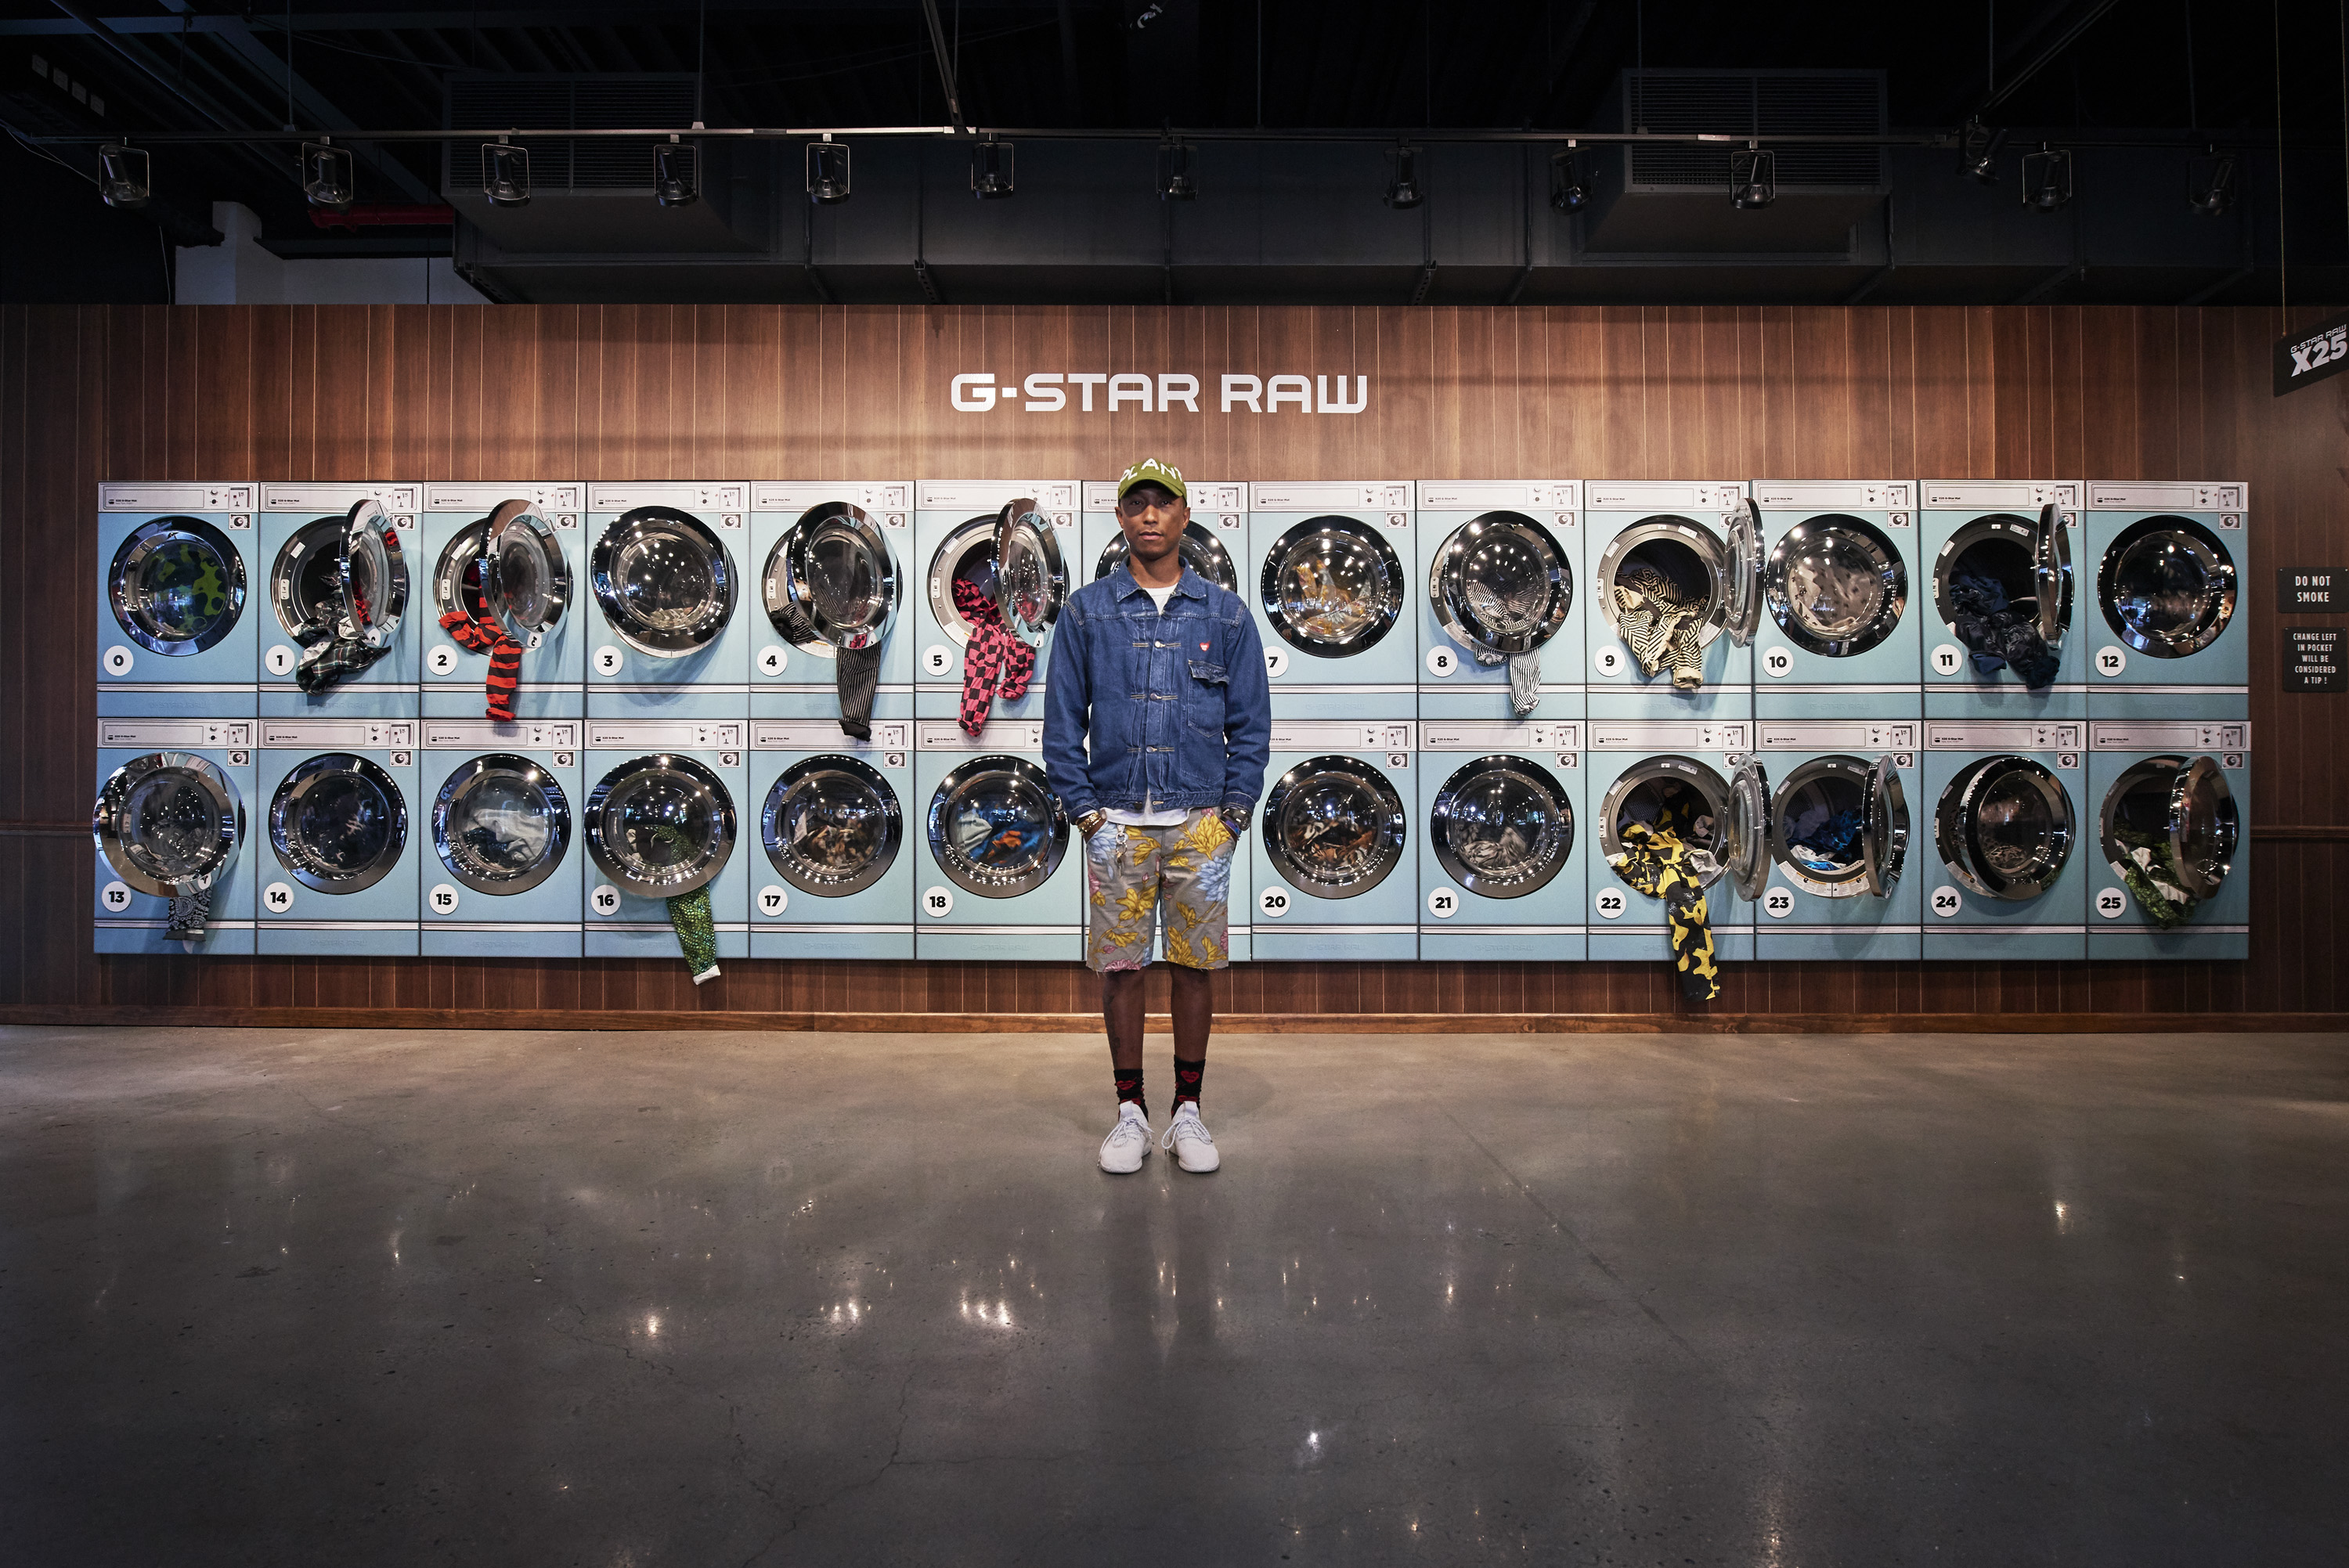 PHARRELL WILLIAMS PRESENTED IN N.Y HIS NEW CREATIONS FOR G-STAR RAW